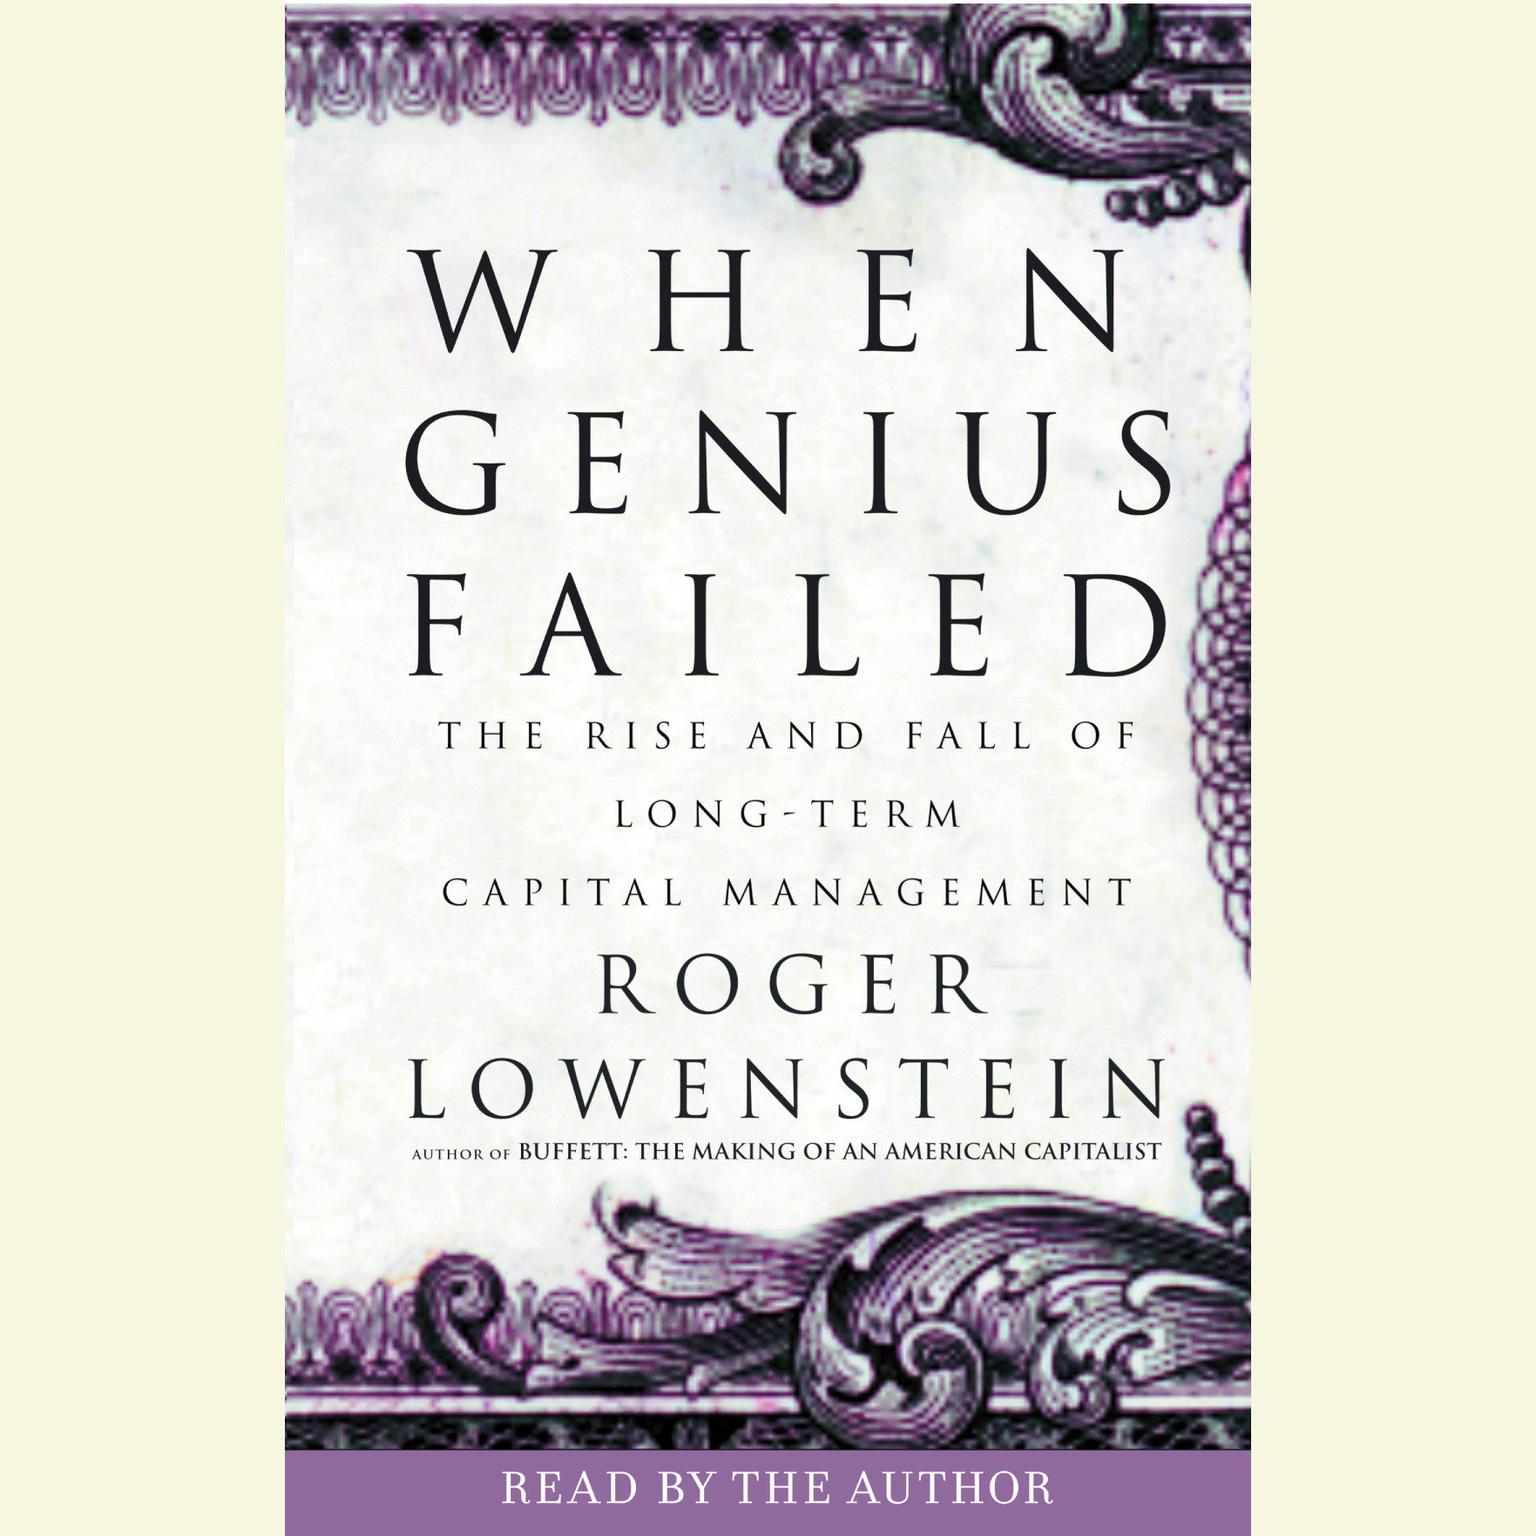 Printable When Genius Failed Audiobook Cover Art